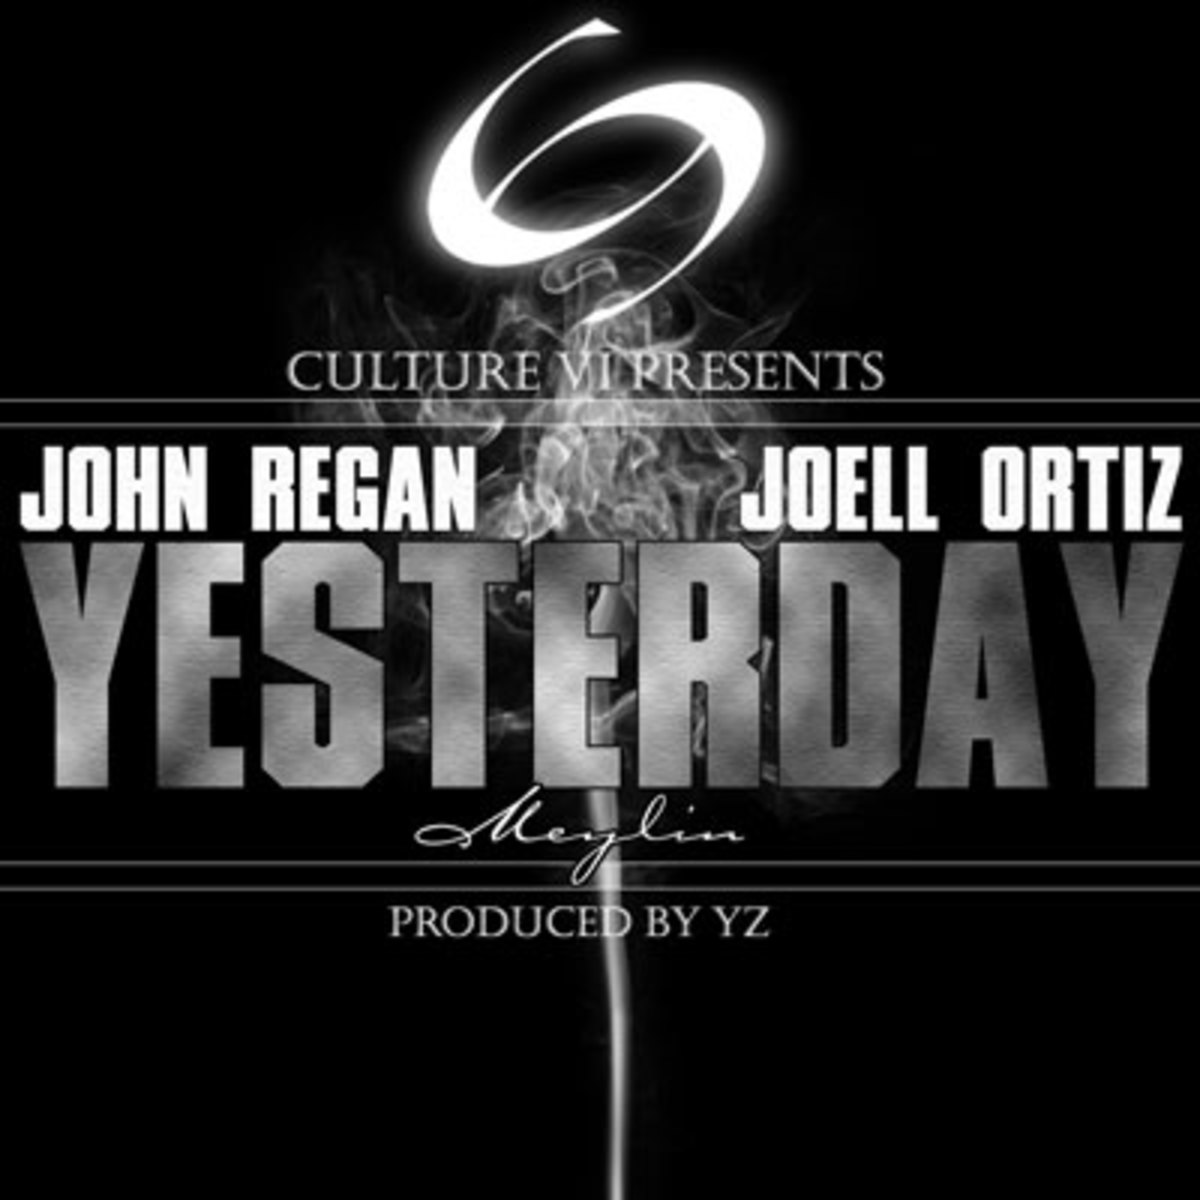 johnregan-yesterday.jpg